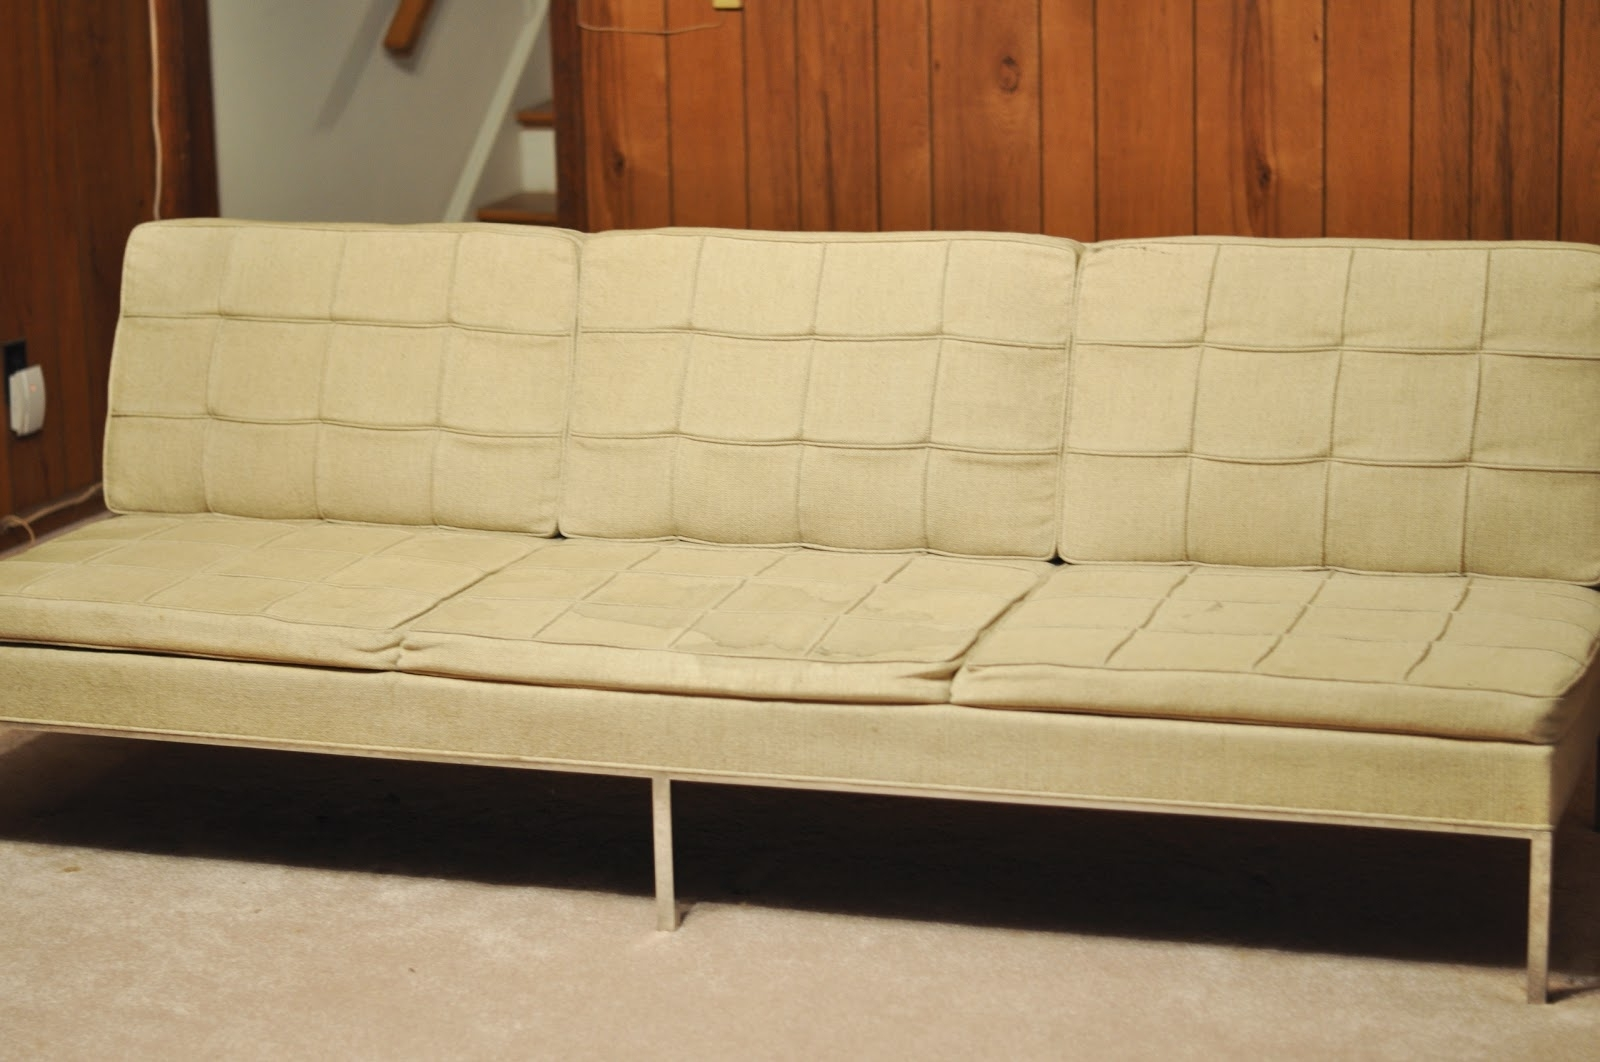 A Treasure In Storage: The Florence Knoll Sofa Comes Home Pertaining To Most Popular Florence Knoll Fabric Sofas (View 1 of 20)